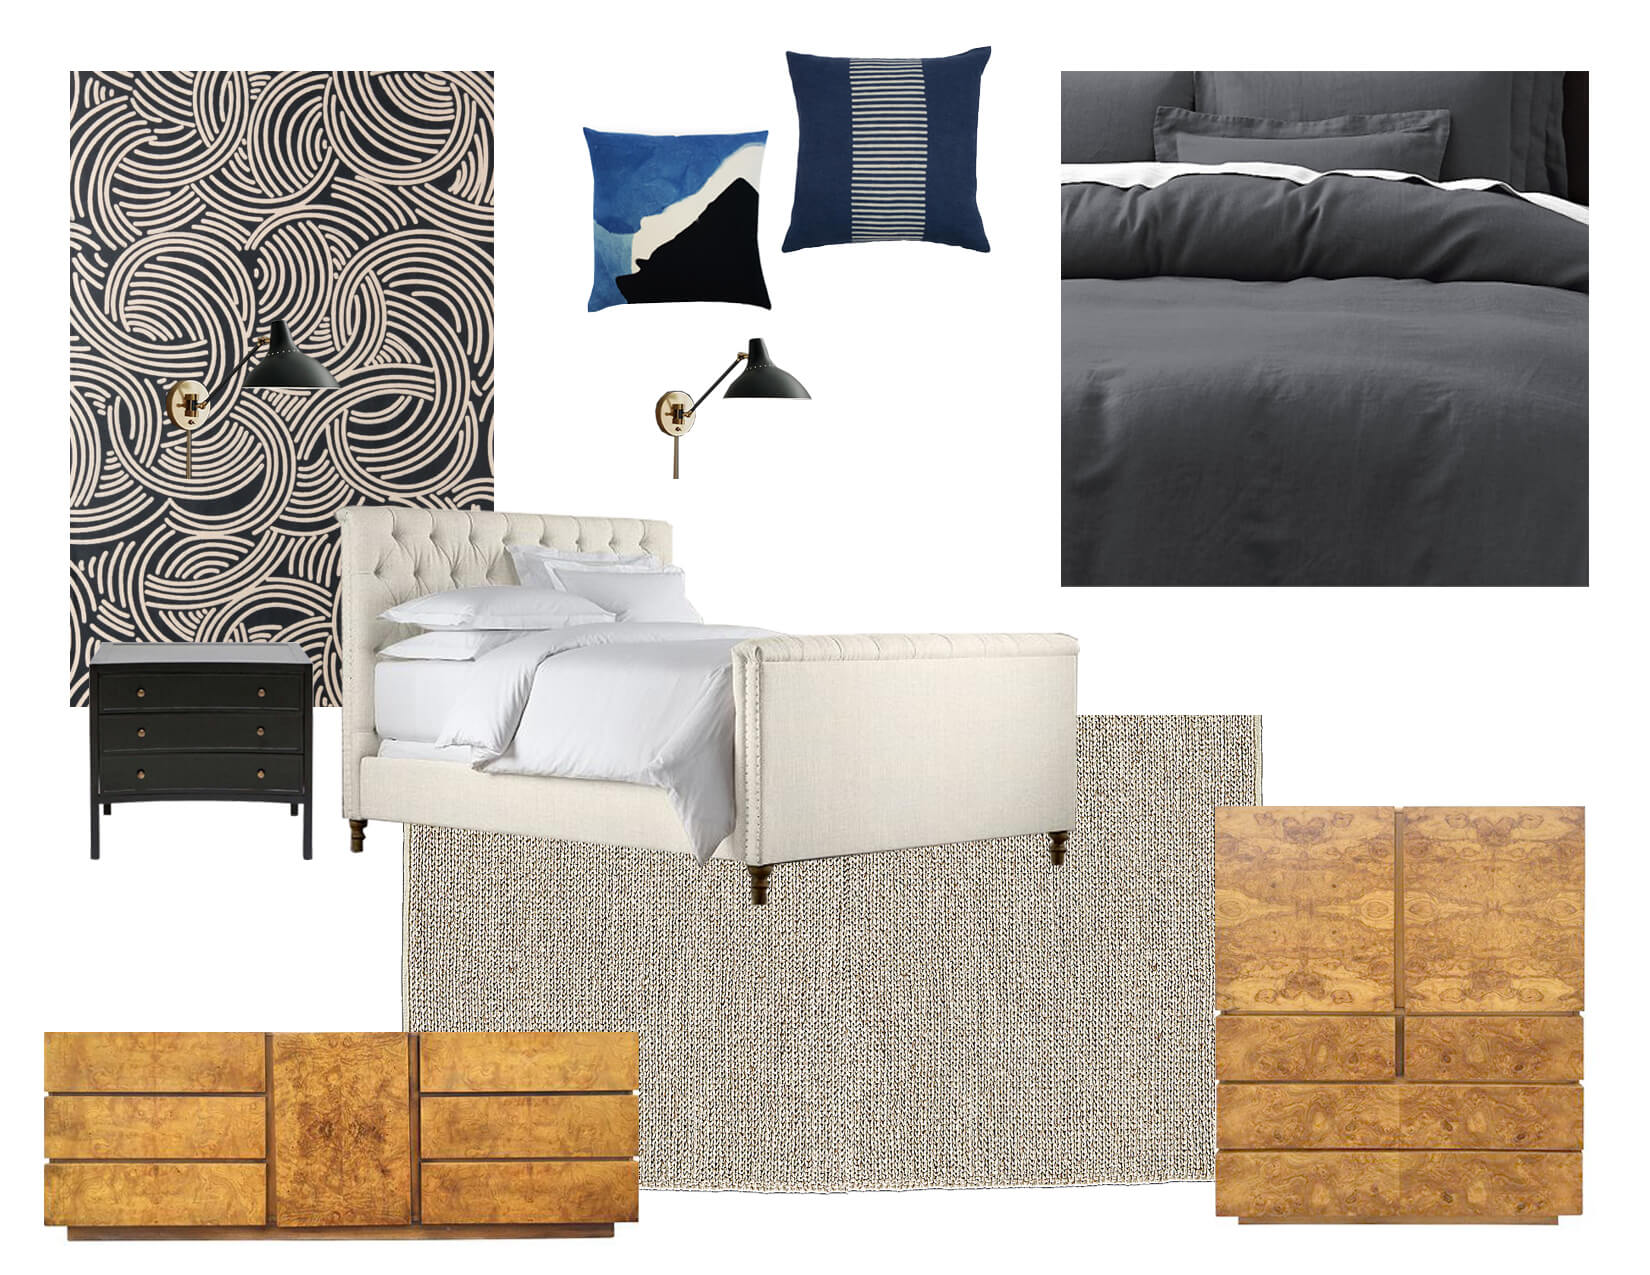 10_GINNY_MACDONALD_TRADITIONAL_BEDROOM_MOODBOARD